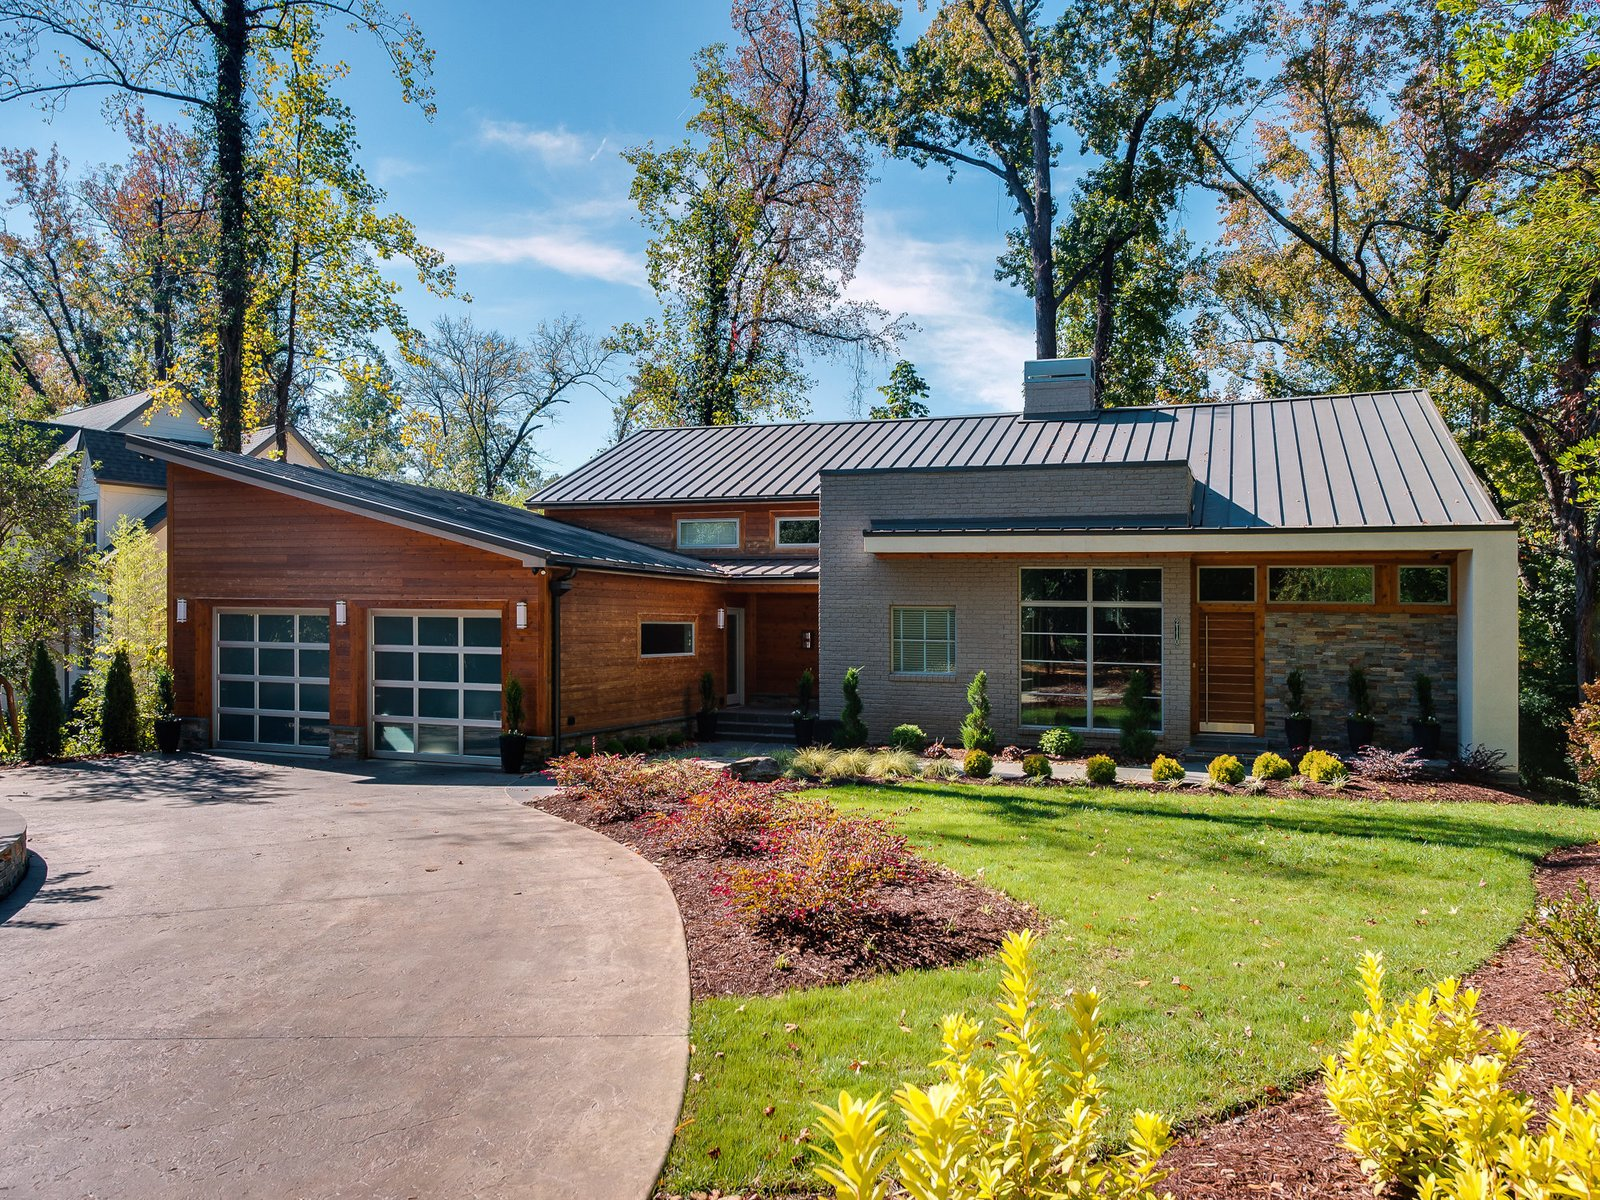 Western red cedar, natural stone, stucco, and brick form a warm exterior. The standing metal metal roof, under warranty through 2055, withstands winds up to 110 miles per hour. Automatic LED lighting illuminates the entry at night.  Photo 3 of 11 in Move Into This Midcentury Modern Revival in North Carolina For $1.2M